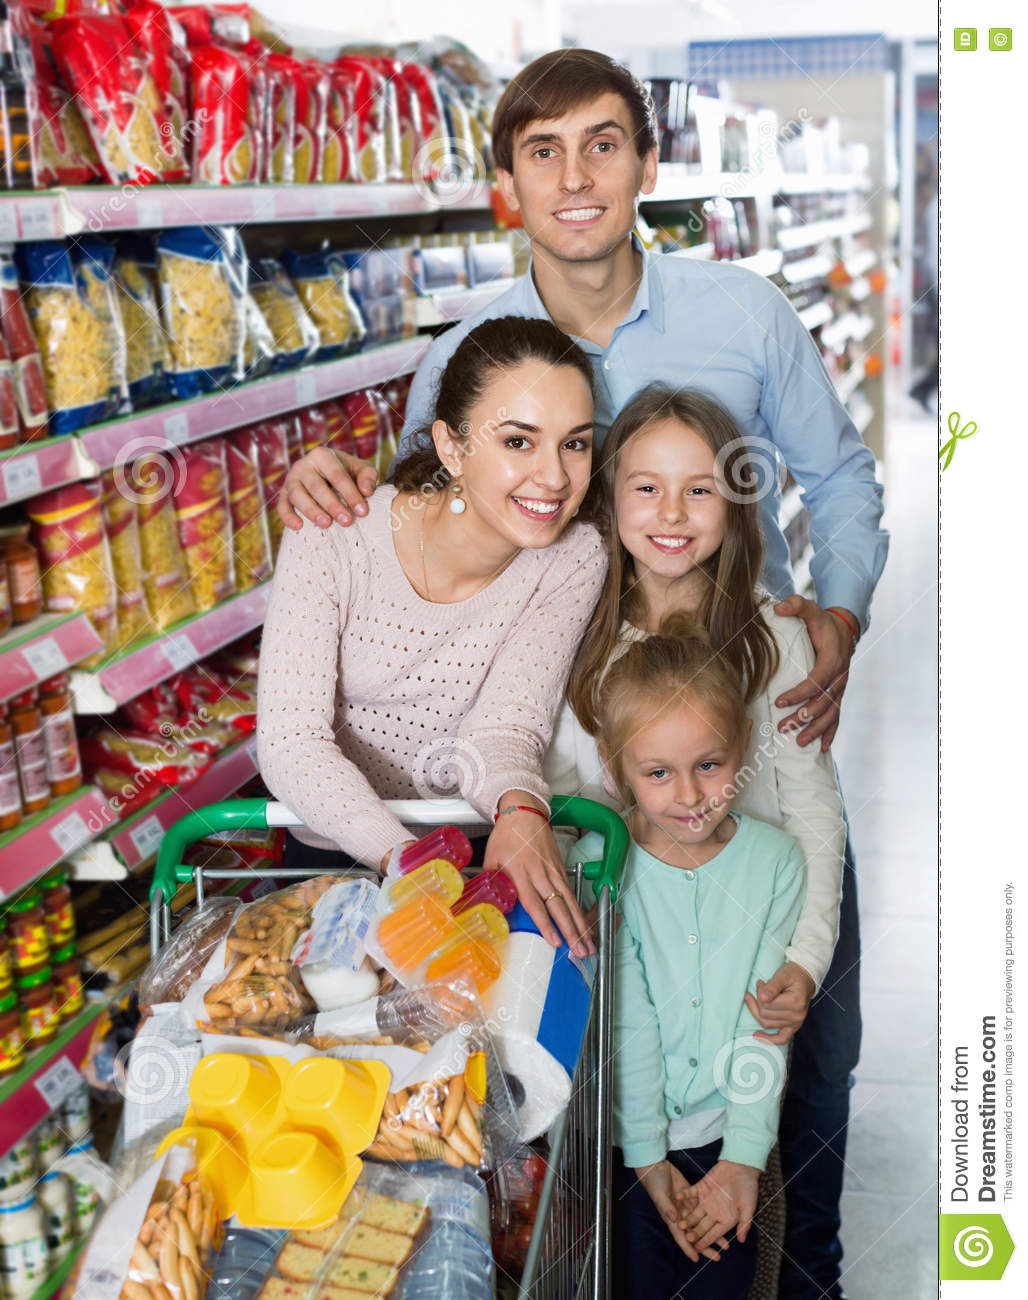 Positive customers with children buying food in hypermarket